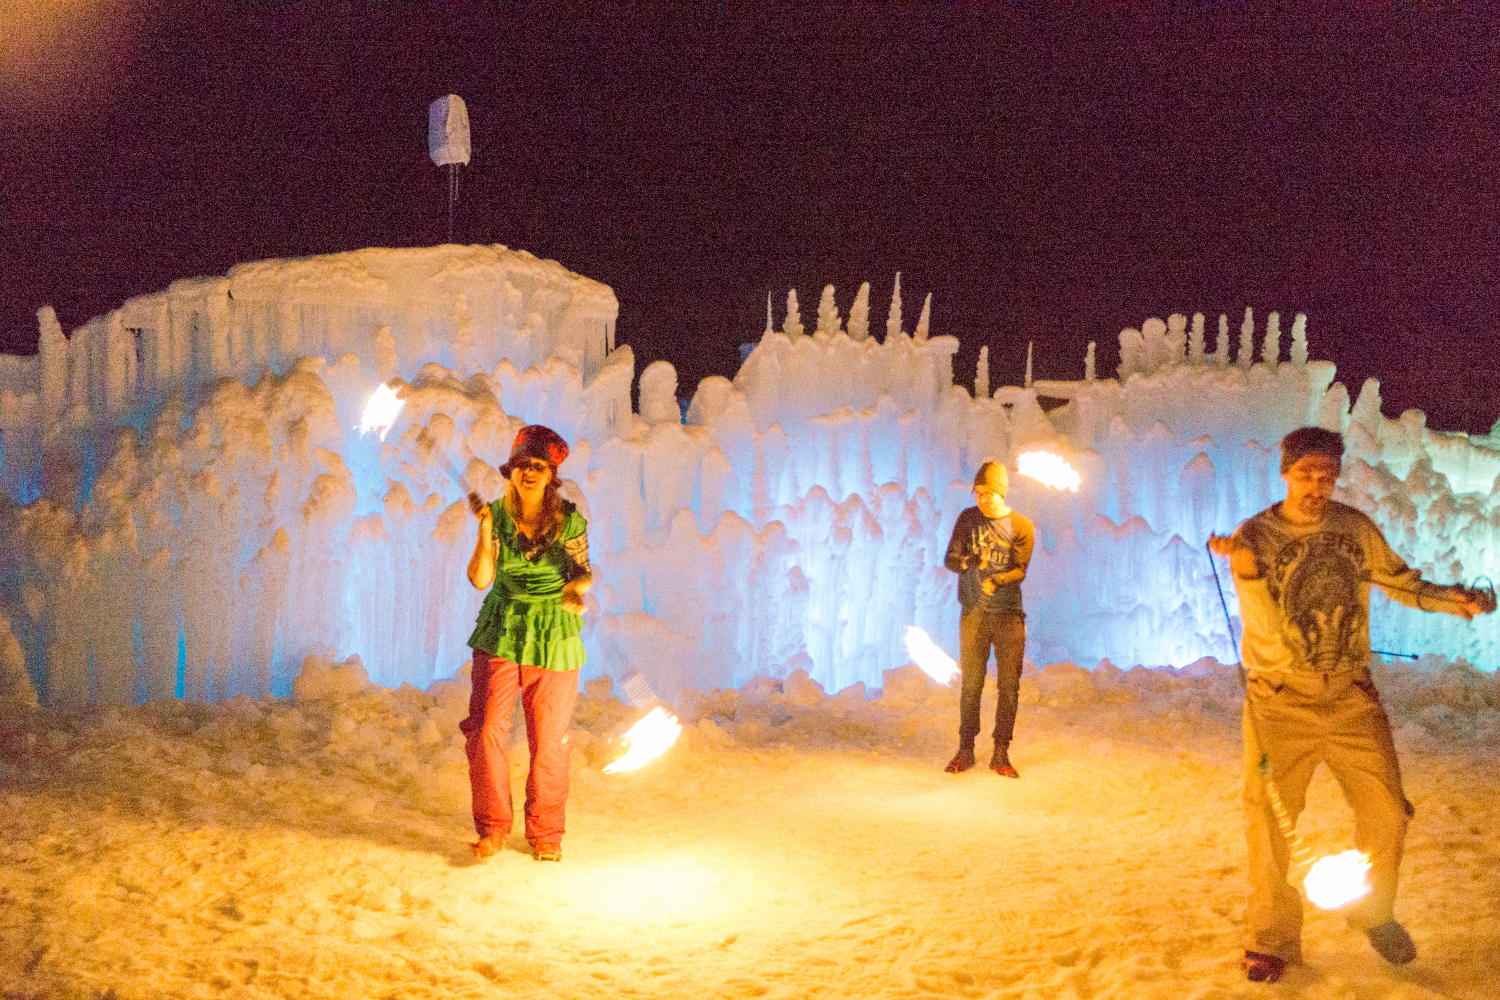 midway ice castle fire